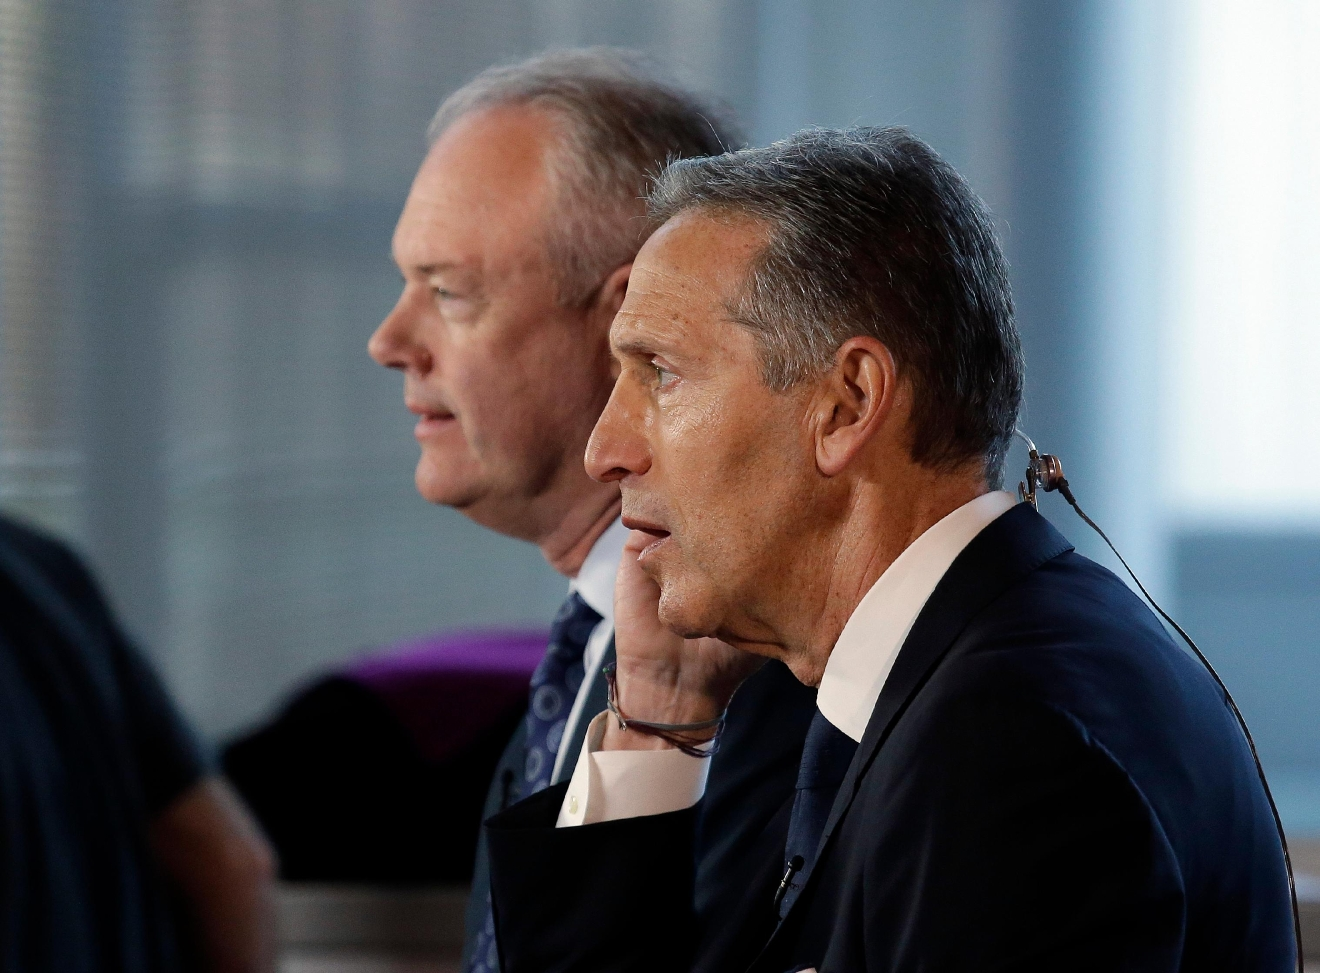 Starbucks CEO Howard Schultz, right, sits with President and Chief Operating Officer Kevin Johnson for a television interview before the company's annual shareholder meeting, Wednesday, March 22, 2017, in Seattle. Johnson takes over as CEO from Schultz, who will become executive chairman, in April. (AP Photo/Elaine Thompson)